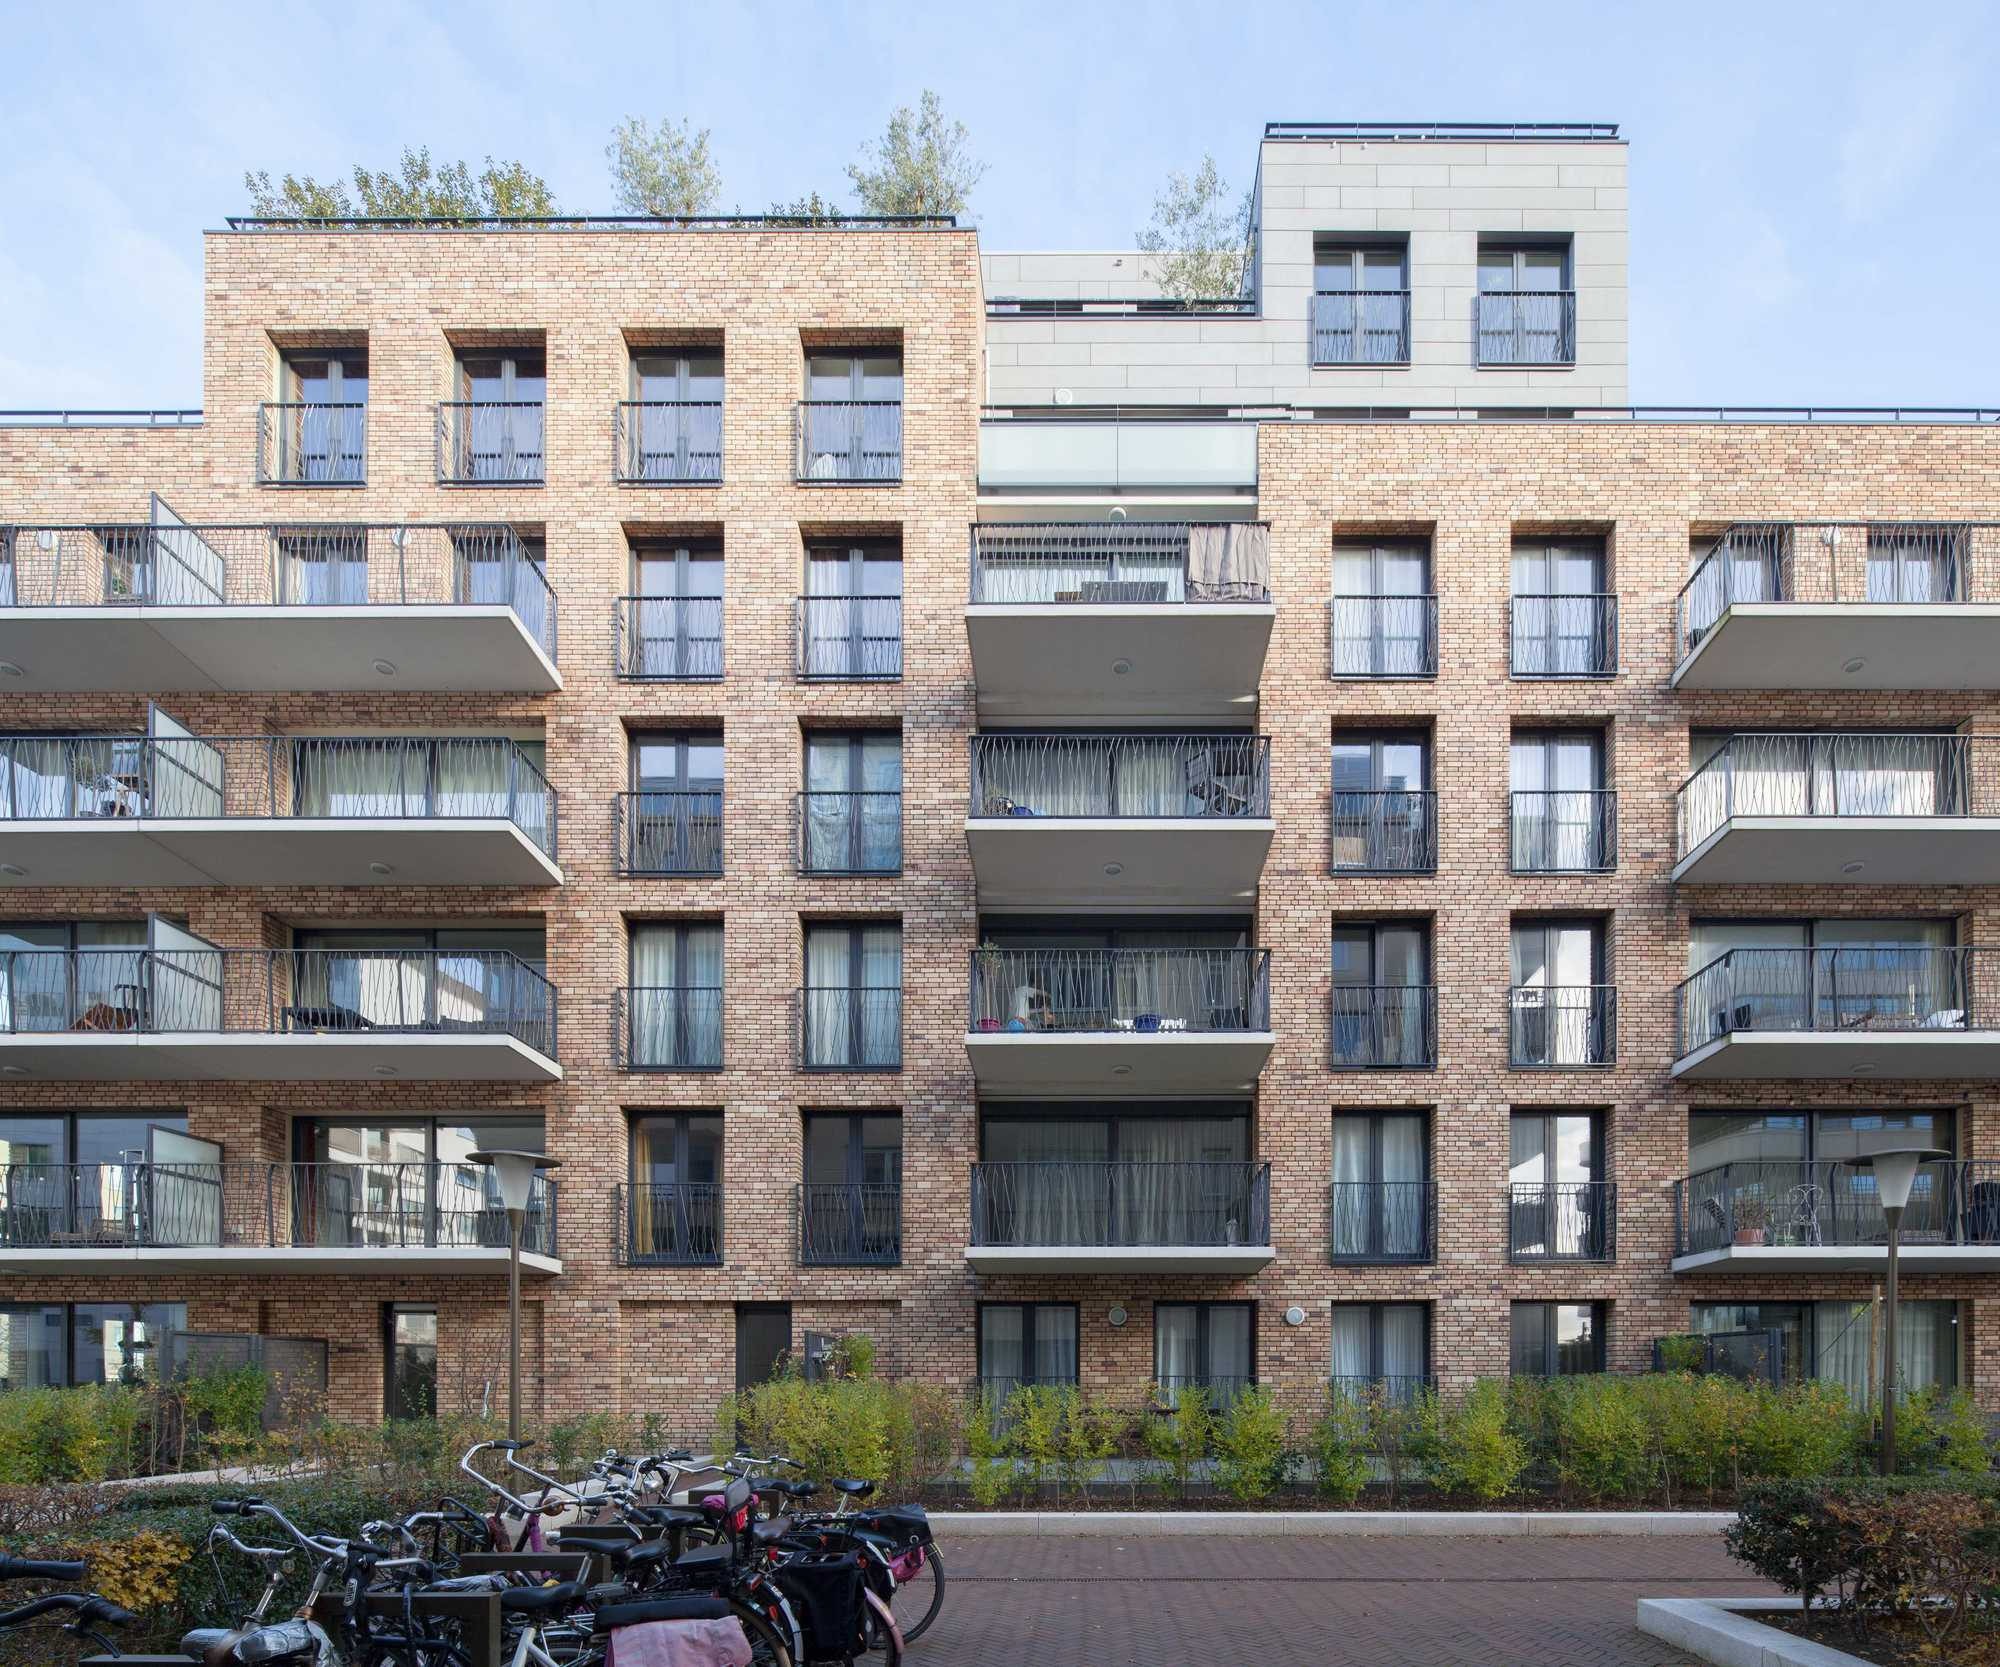 Apartment Com: De Halve Maen Apartment Building / Mecanoo